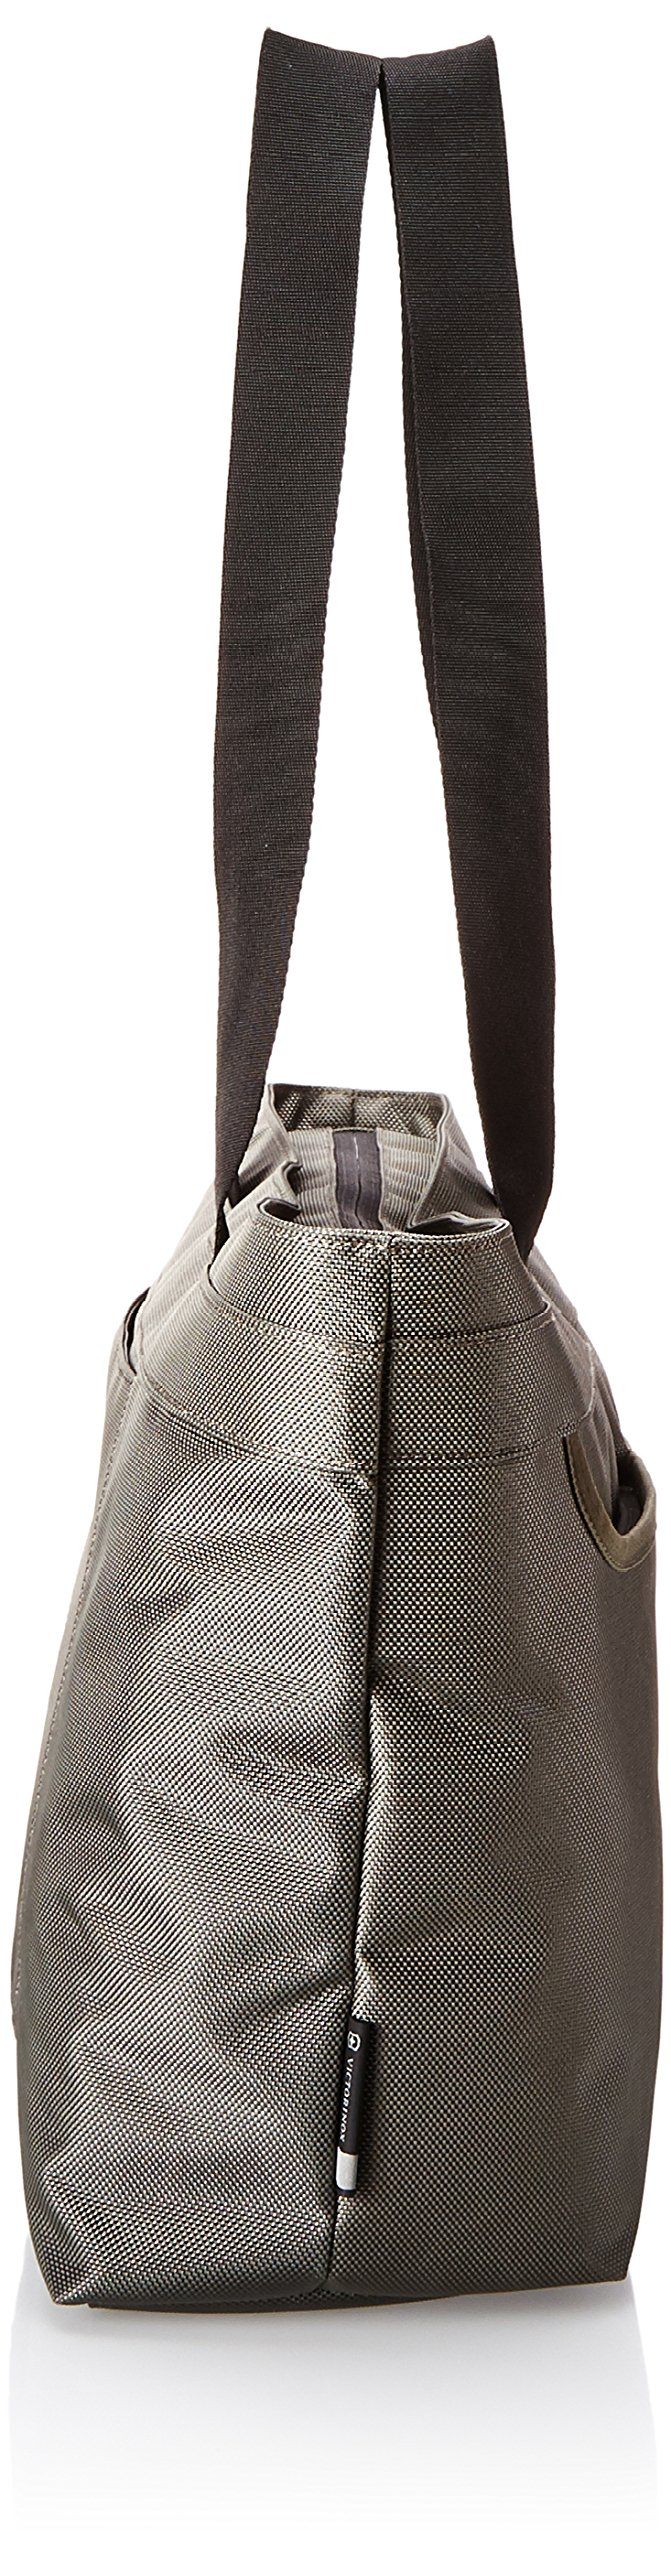 Victorinox Werks Traveler 5.0 WT Shopping Tote, Olive Green, One Size by Victorinox (Image #4)